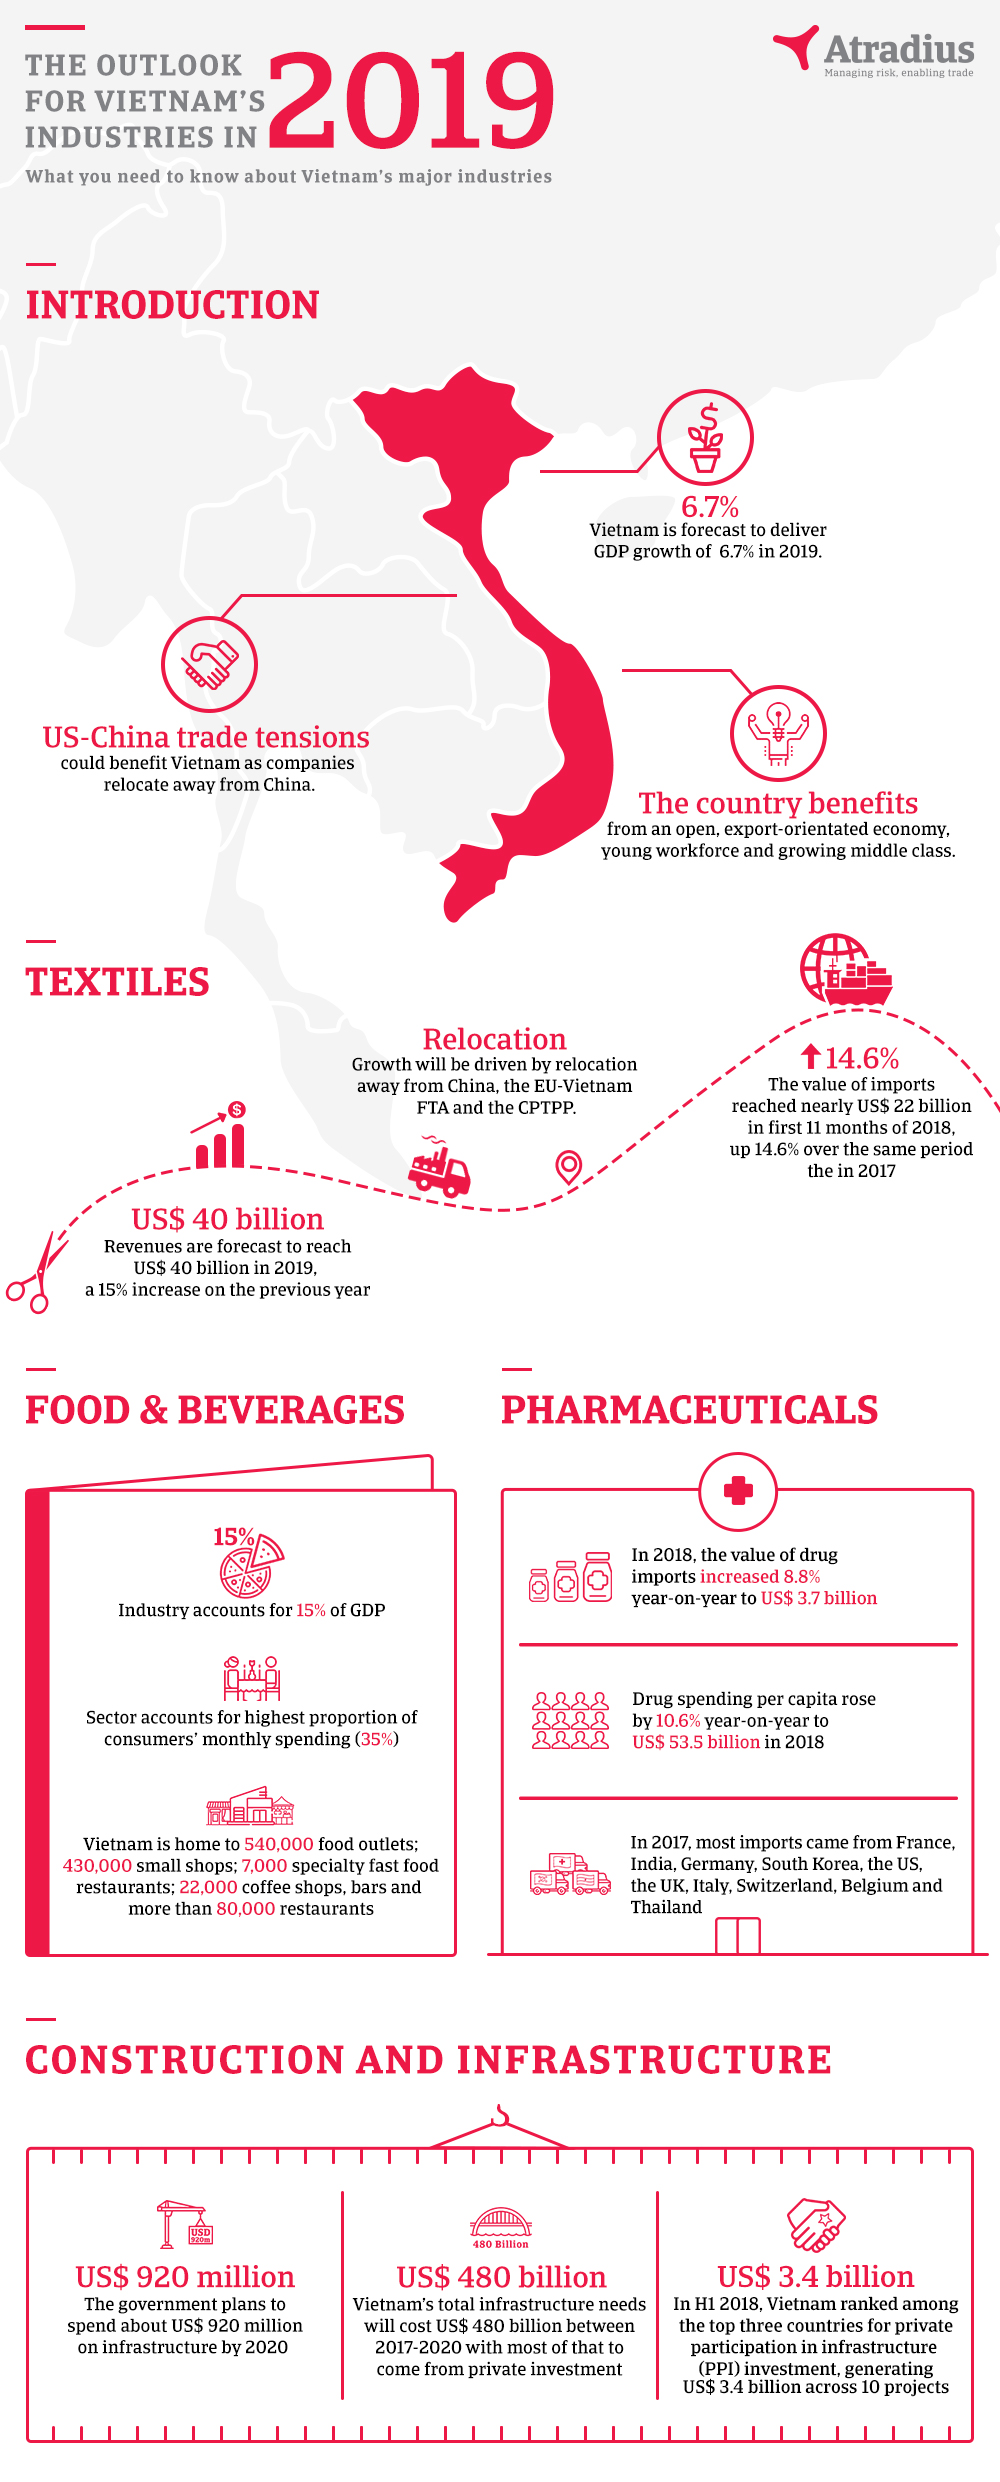 Infographic - The Outlook for Vietnam's industries in 2019